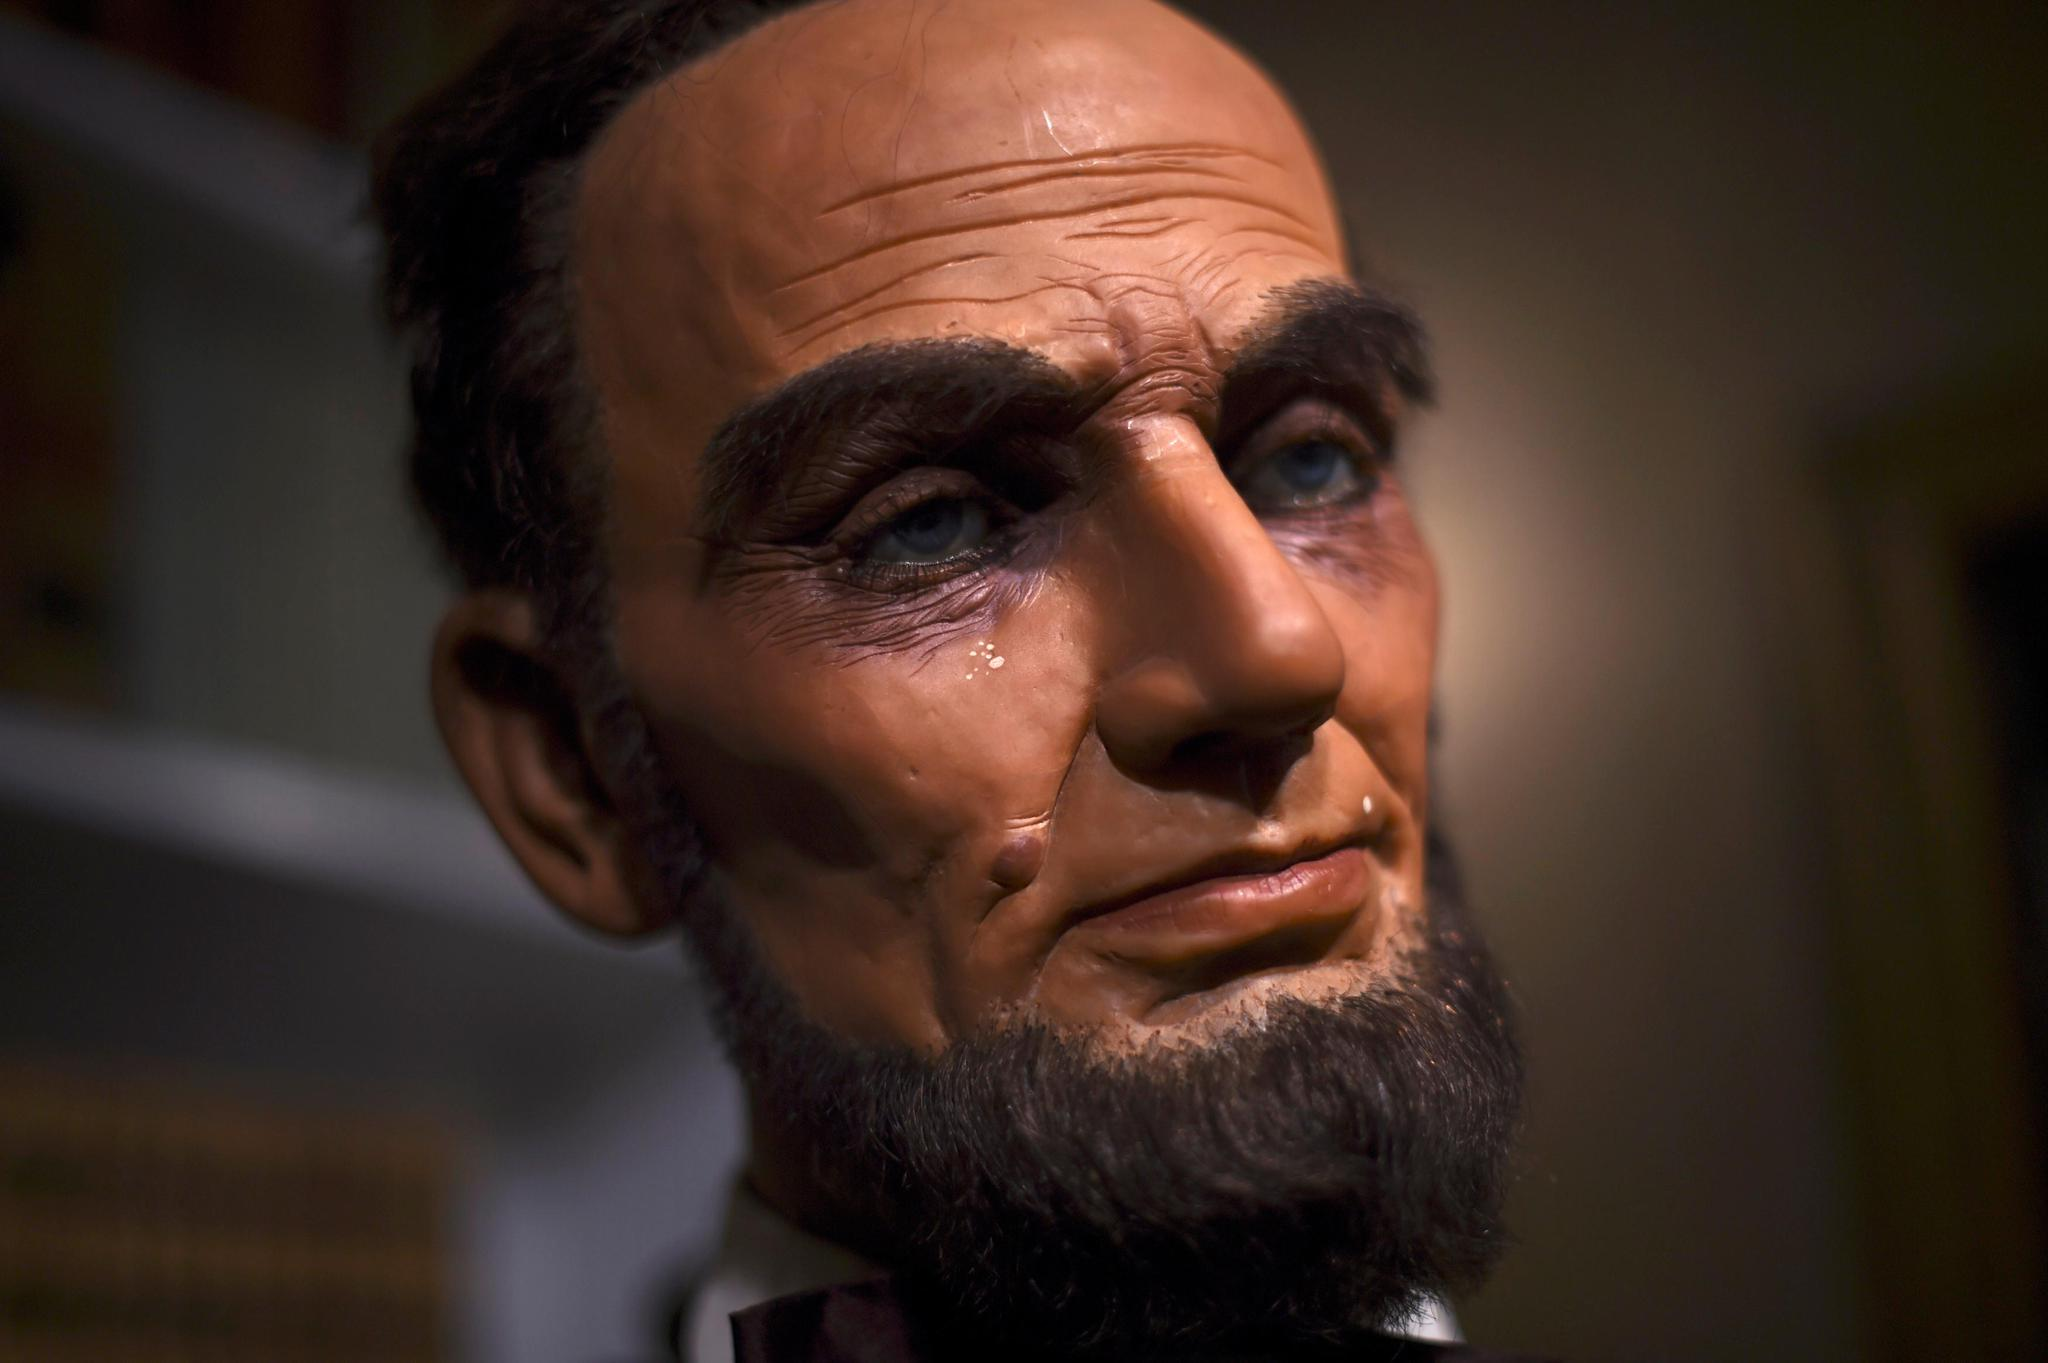 A wax figure of President Abraham Lincoln that sold for $9,000 at an auction of the Hall of Presidents Museum which closed in November 2016. With today's medical care, Abraham Lincoln may have survived his gunshot wound, says one trauma specialist.